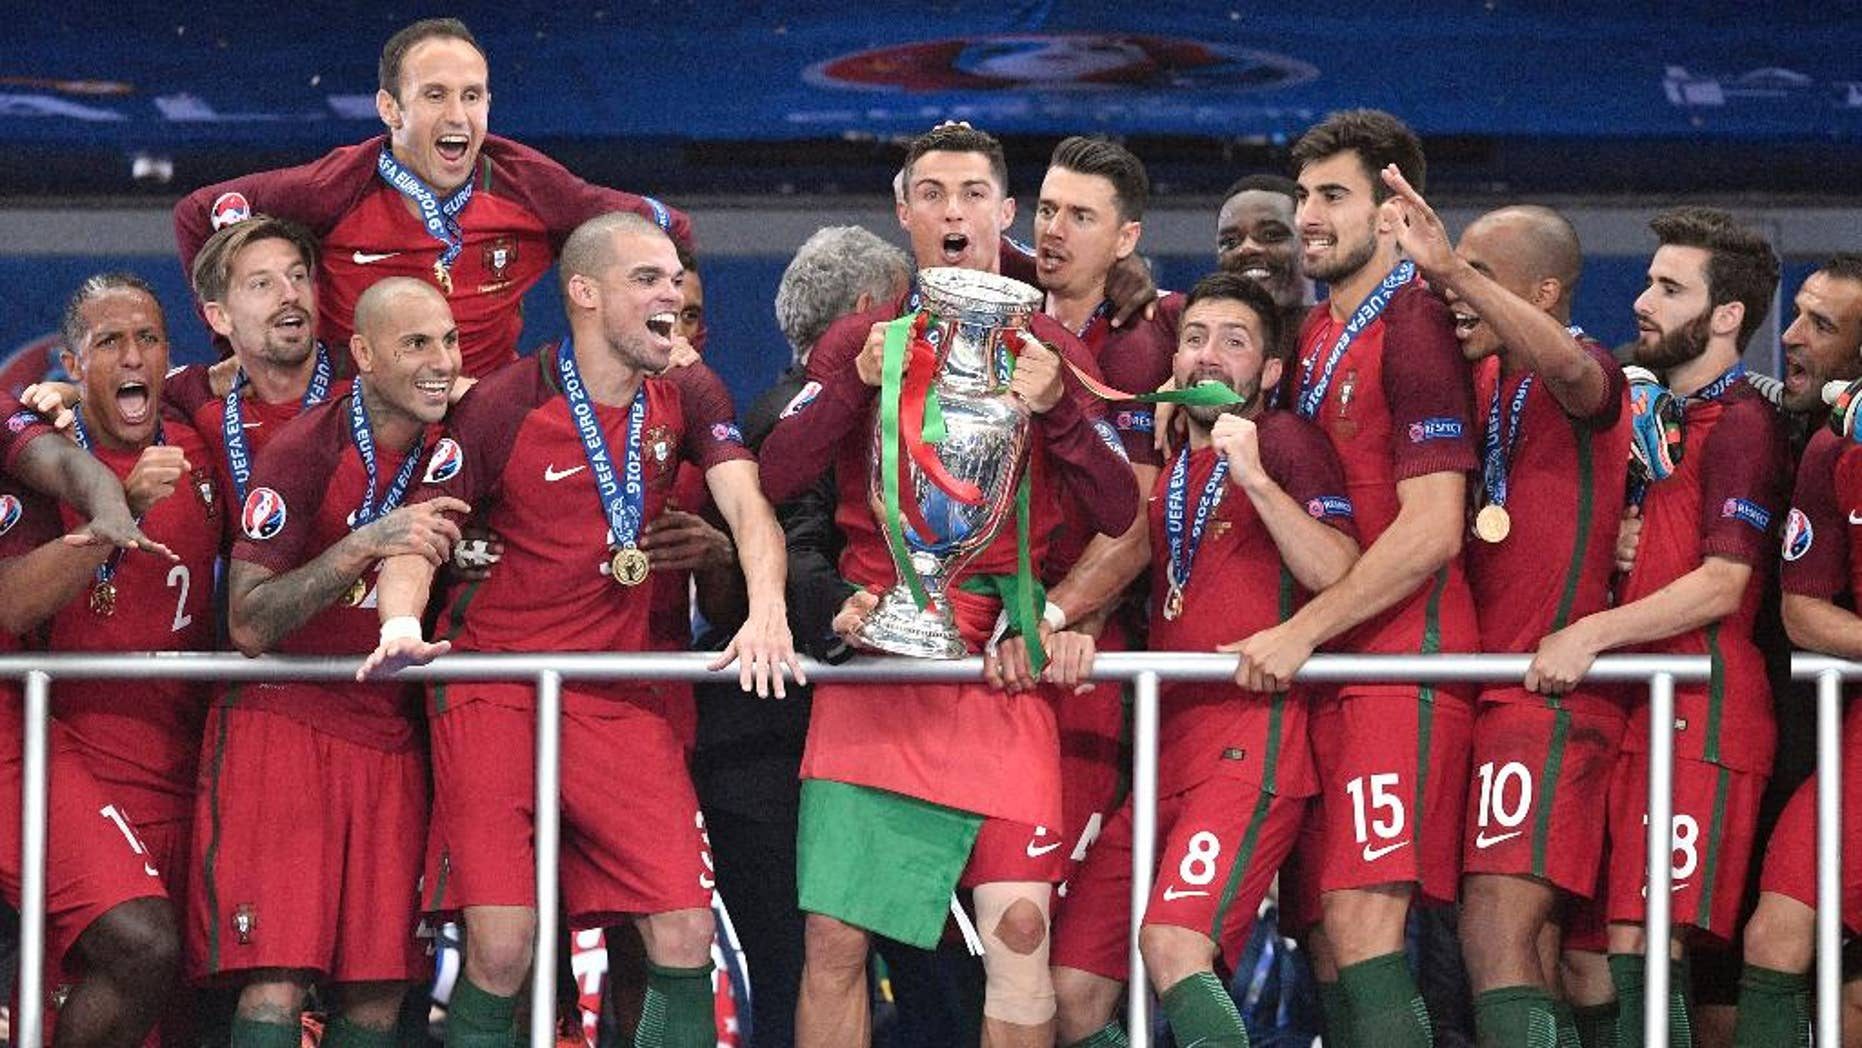 Portugal's Cristiano Ronaldo holds the trophy  after winning the Euro 2016 final soccer match between Portugal and France at the Stade de France in Saint-Denis, north of Paris, Sunday, July 10, 2016. (AP Photo/Martin Meissner)